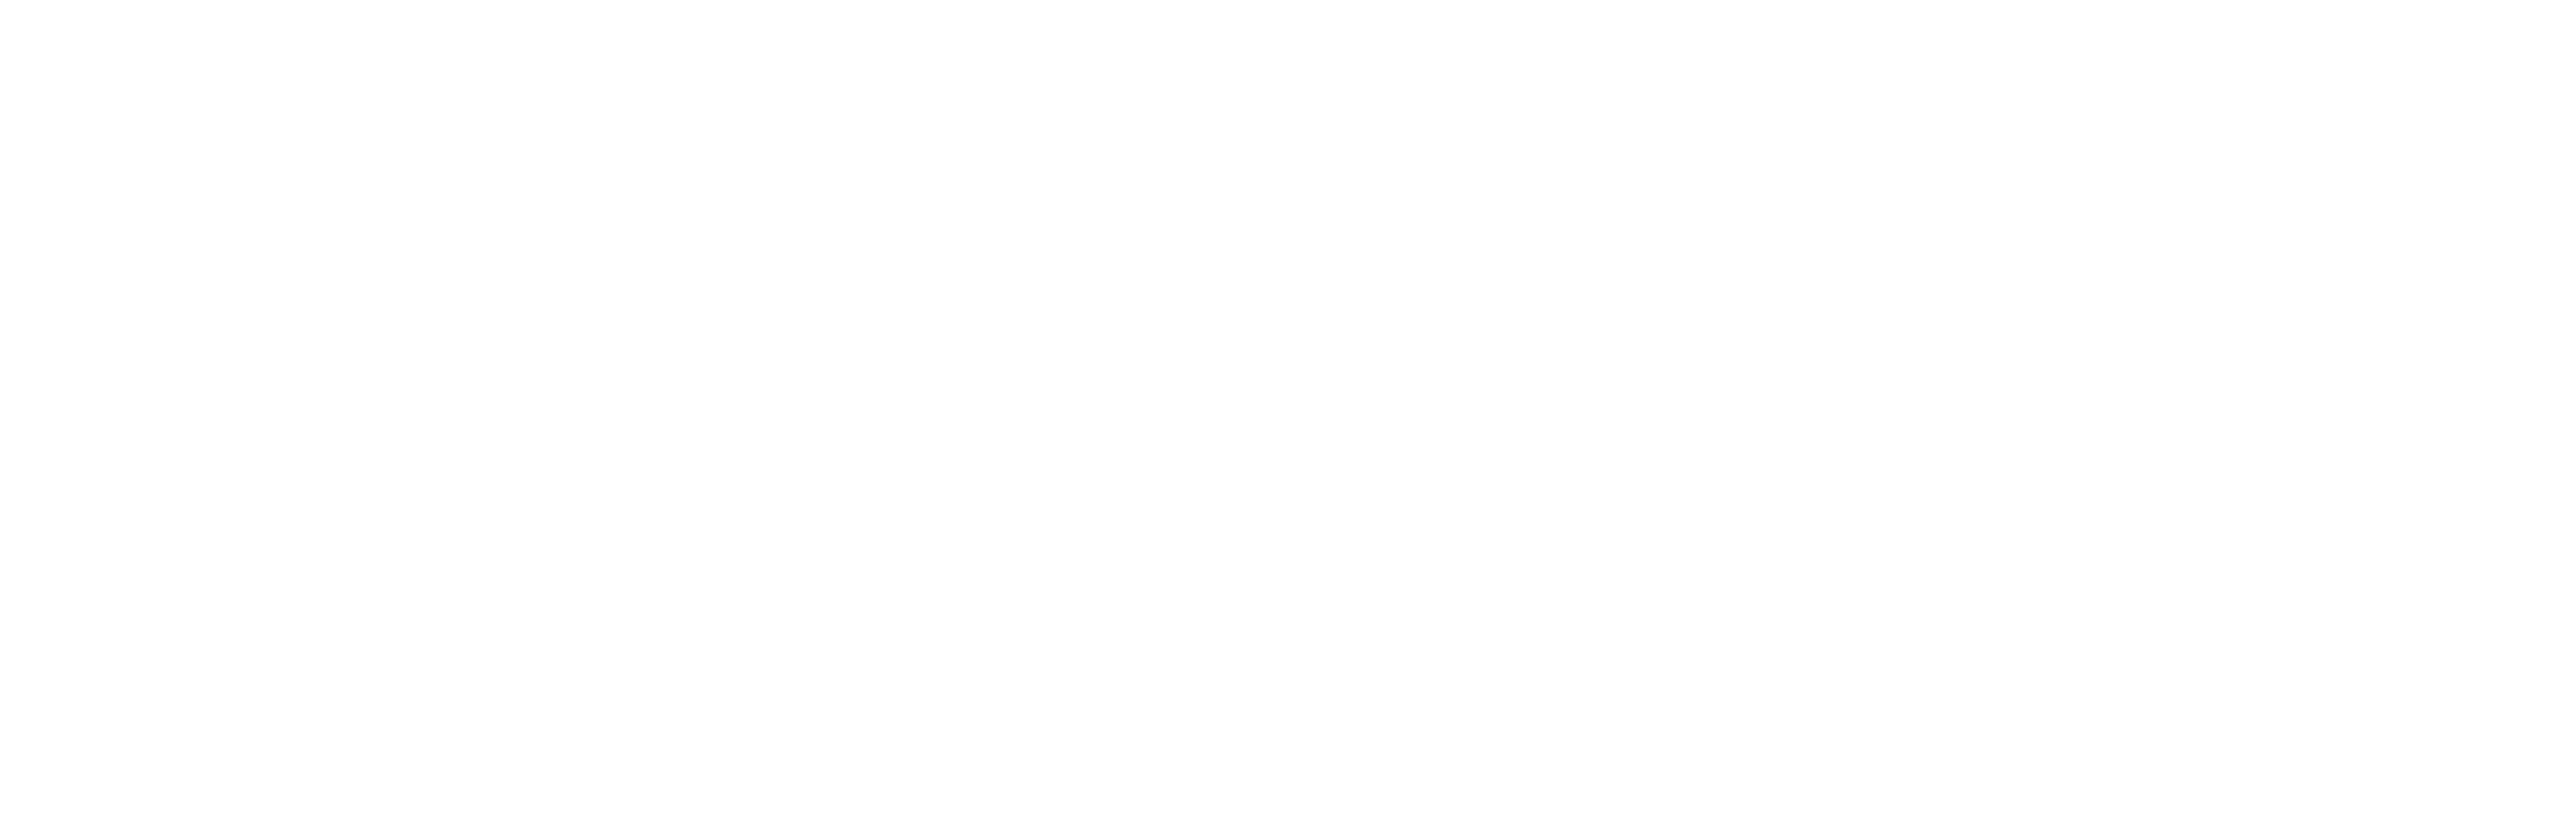 Bullet For My Valentine Wallpapers Music Hq Bullet For My